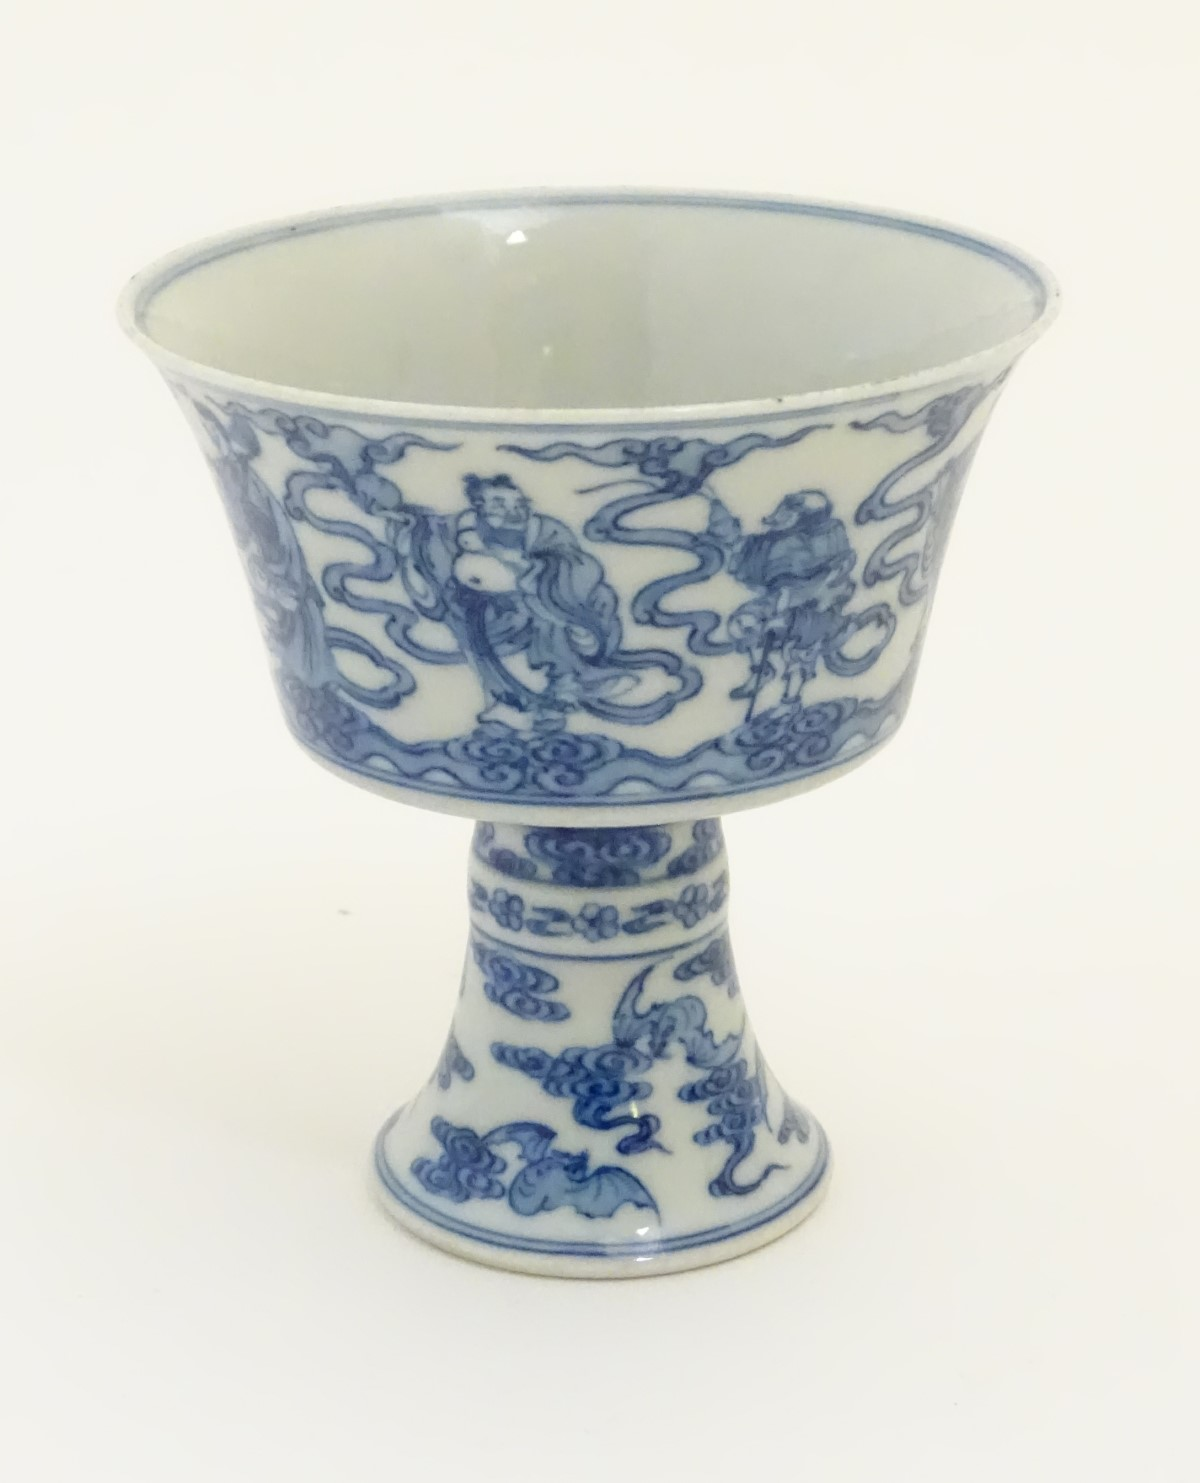 Lot 1 - A Chinese blue and white stem cup / high footed cup decorated with stylised clouds,